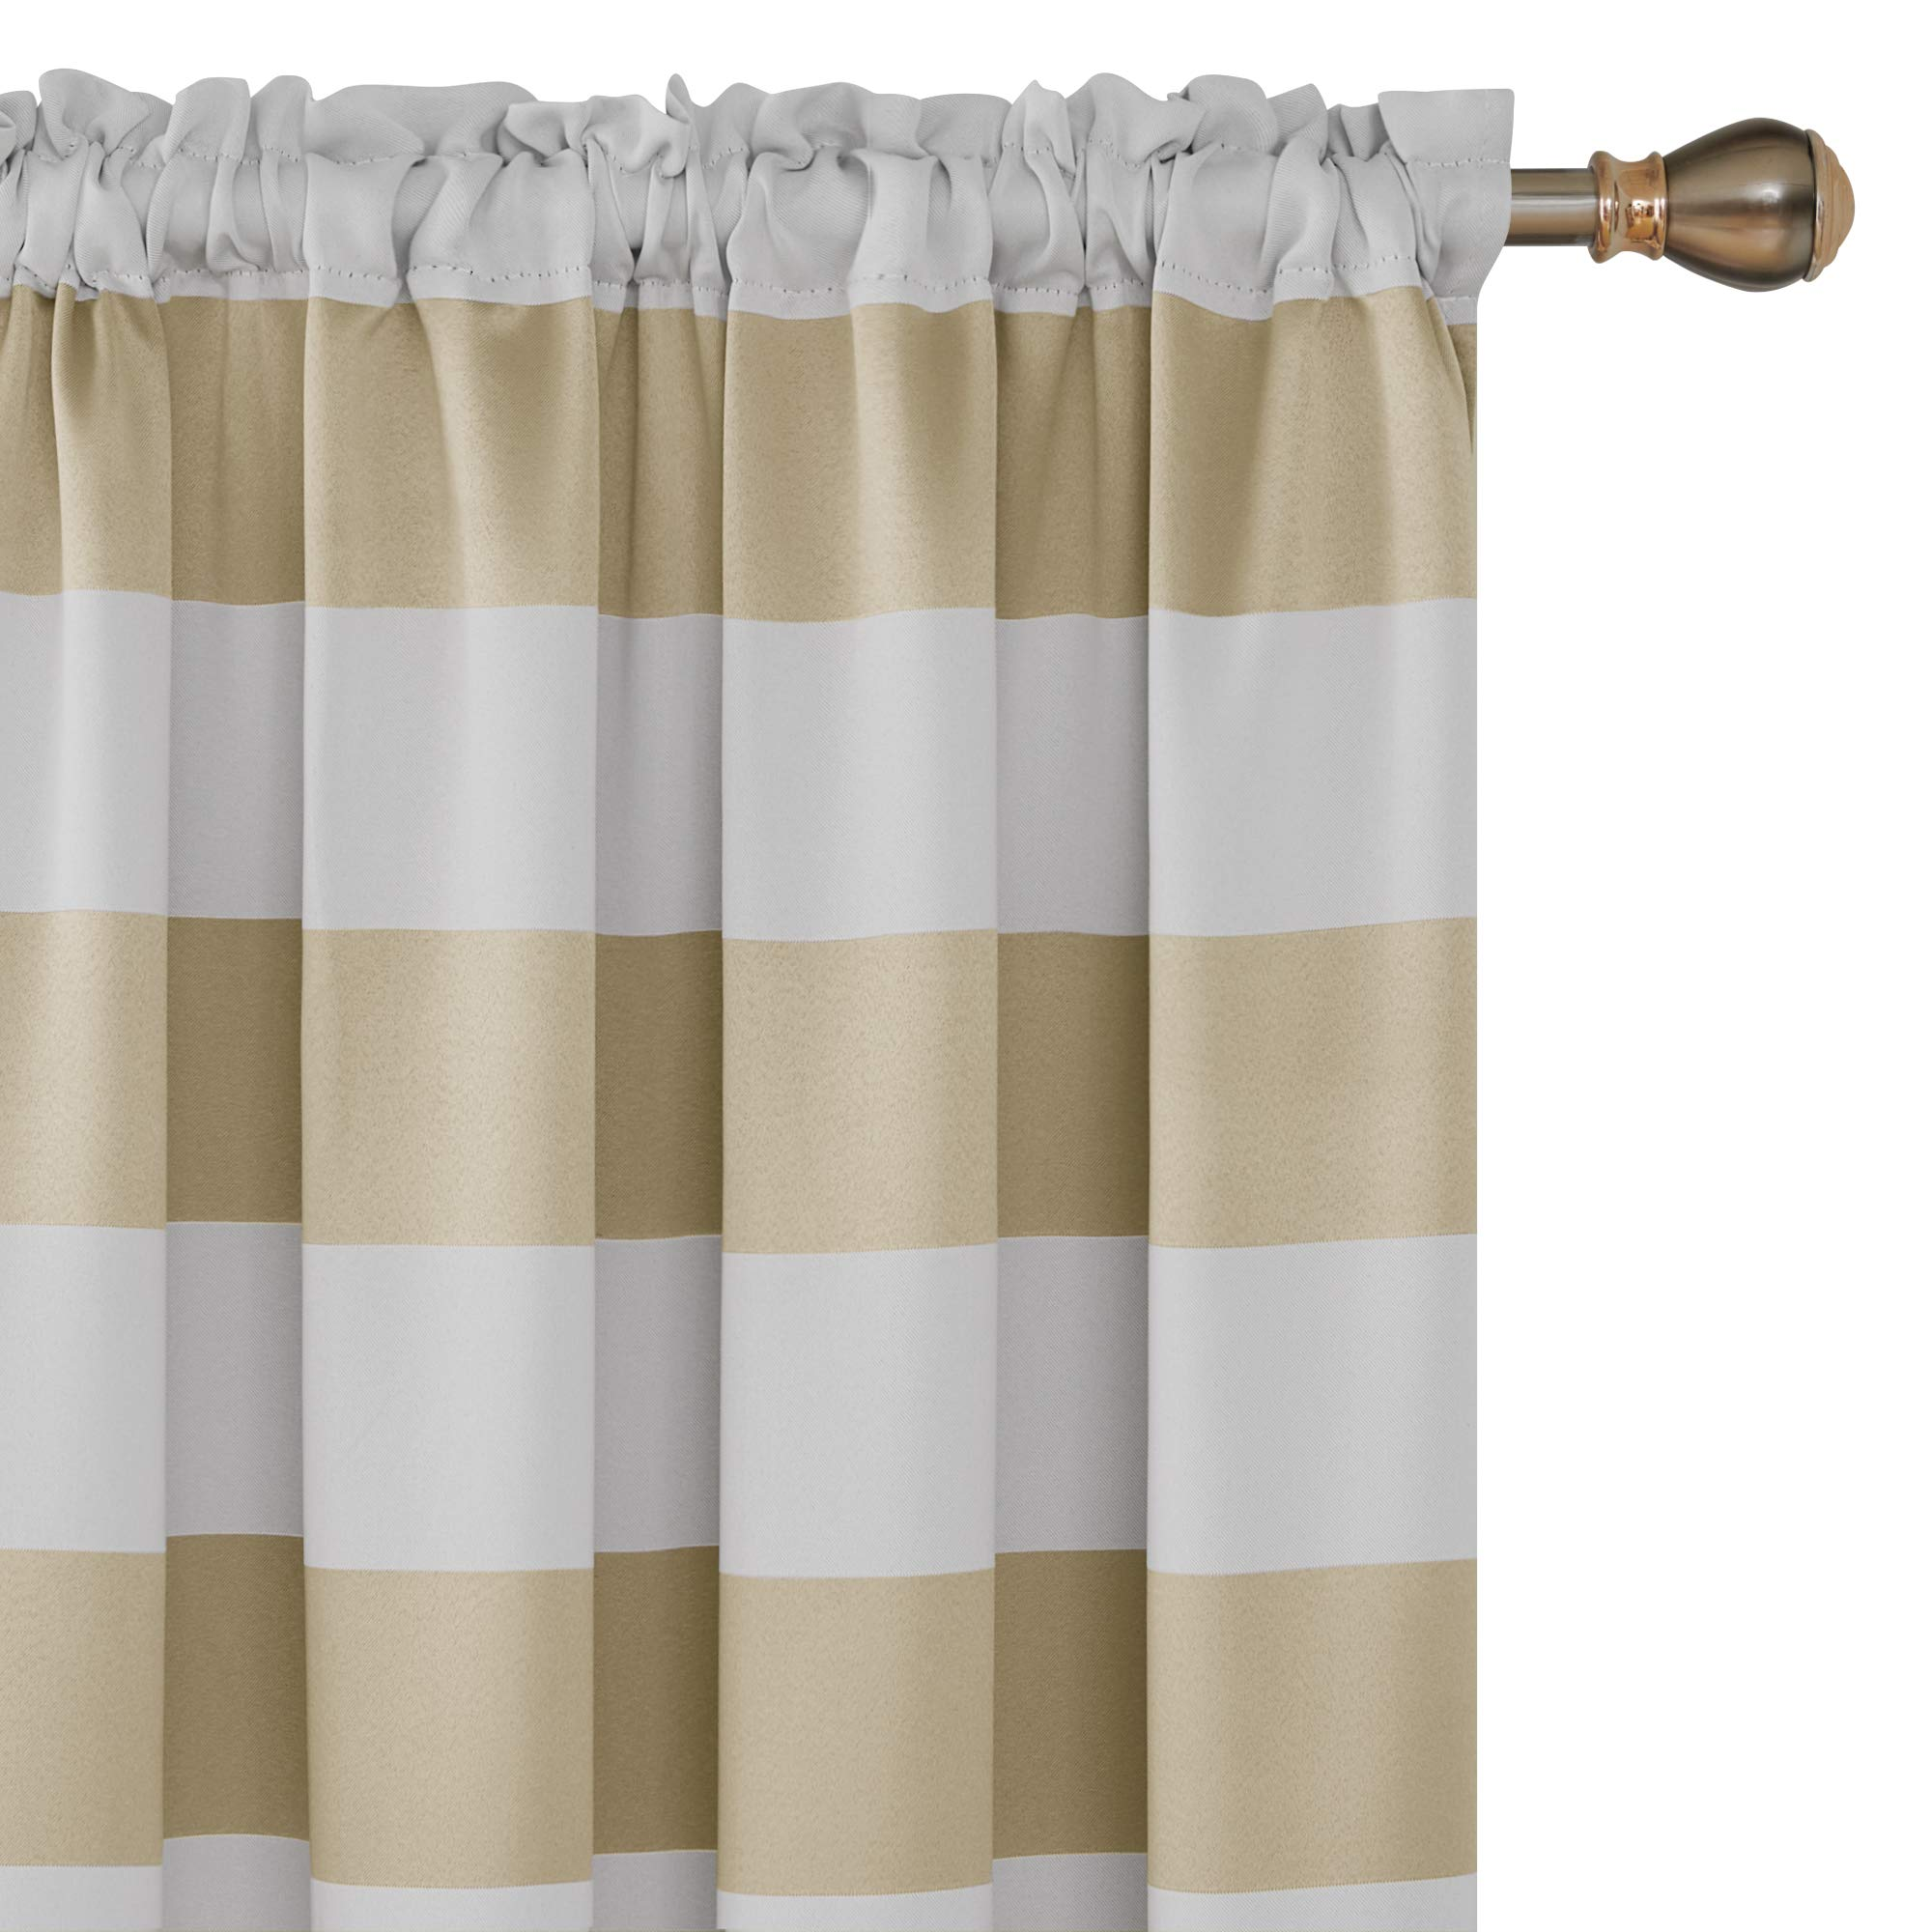 Deconovo Striped Pattern Room Darkening Curtains Rod Pocket Thermal Insulated Curtains for Window Curtains 42W X 84L Champagne 2 Panels Curtains